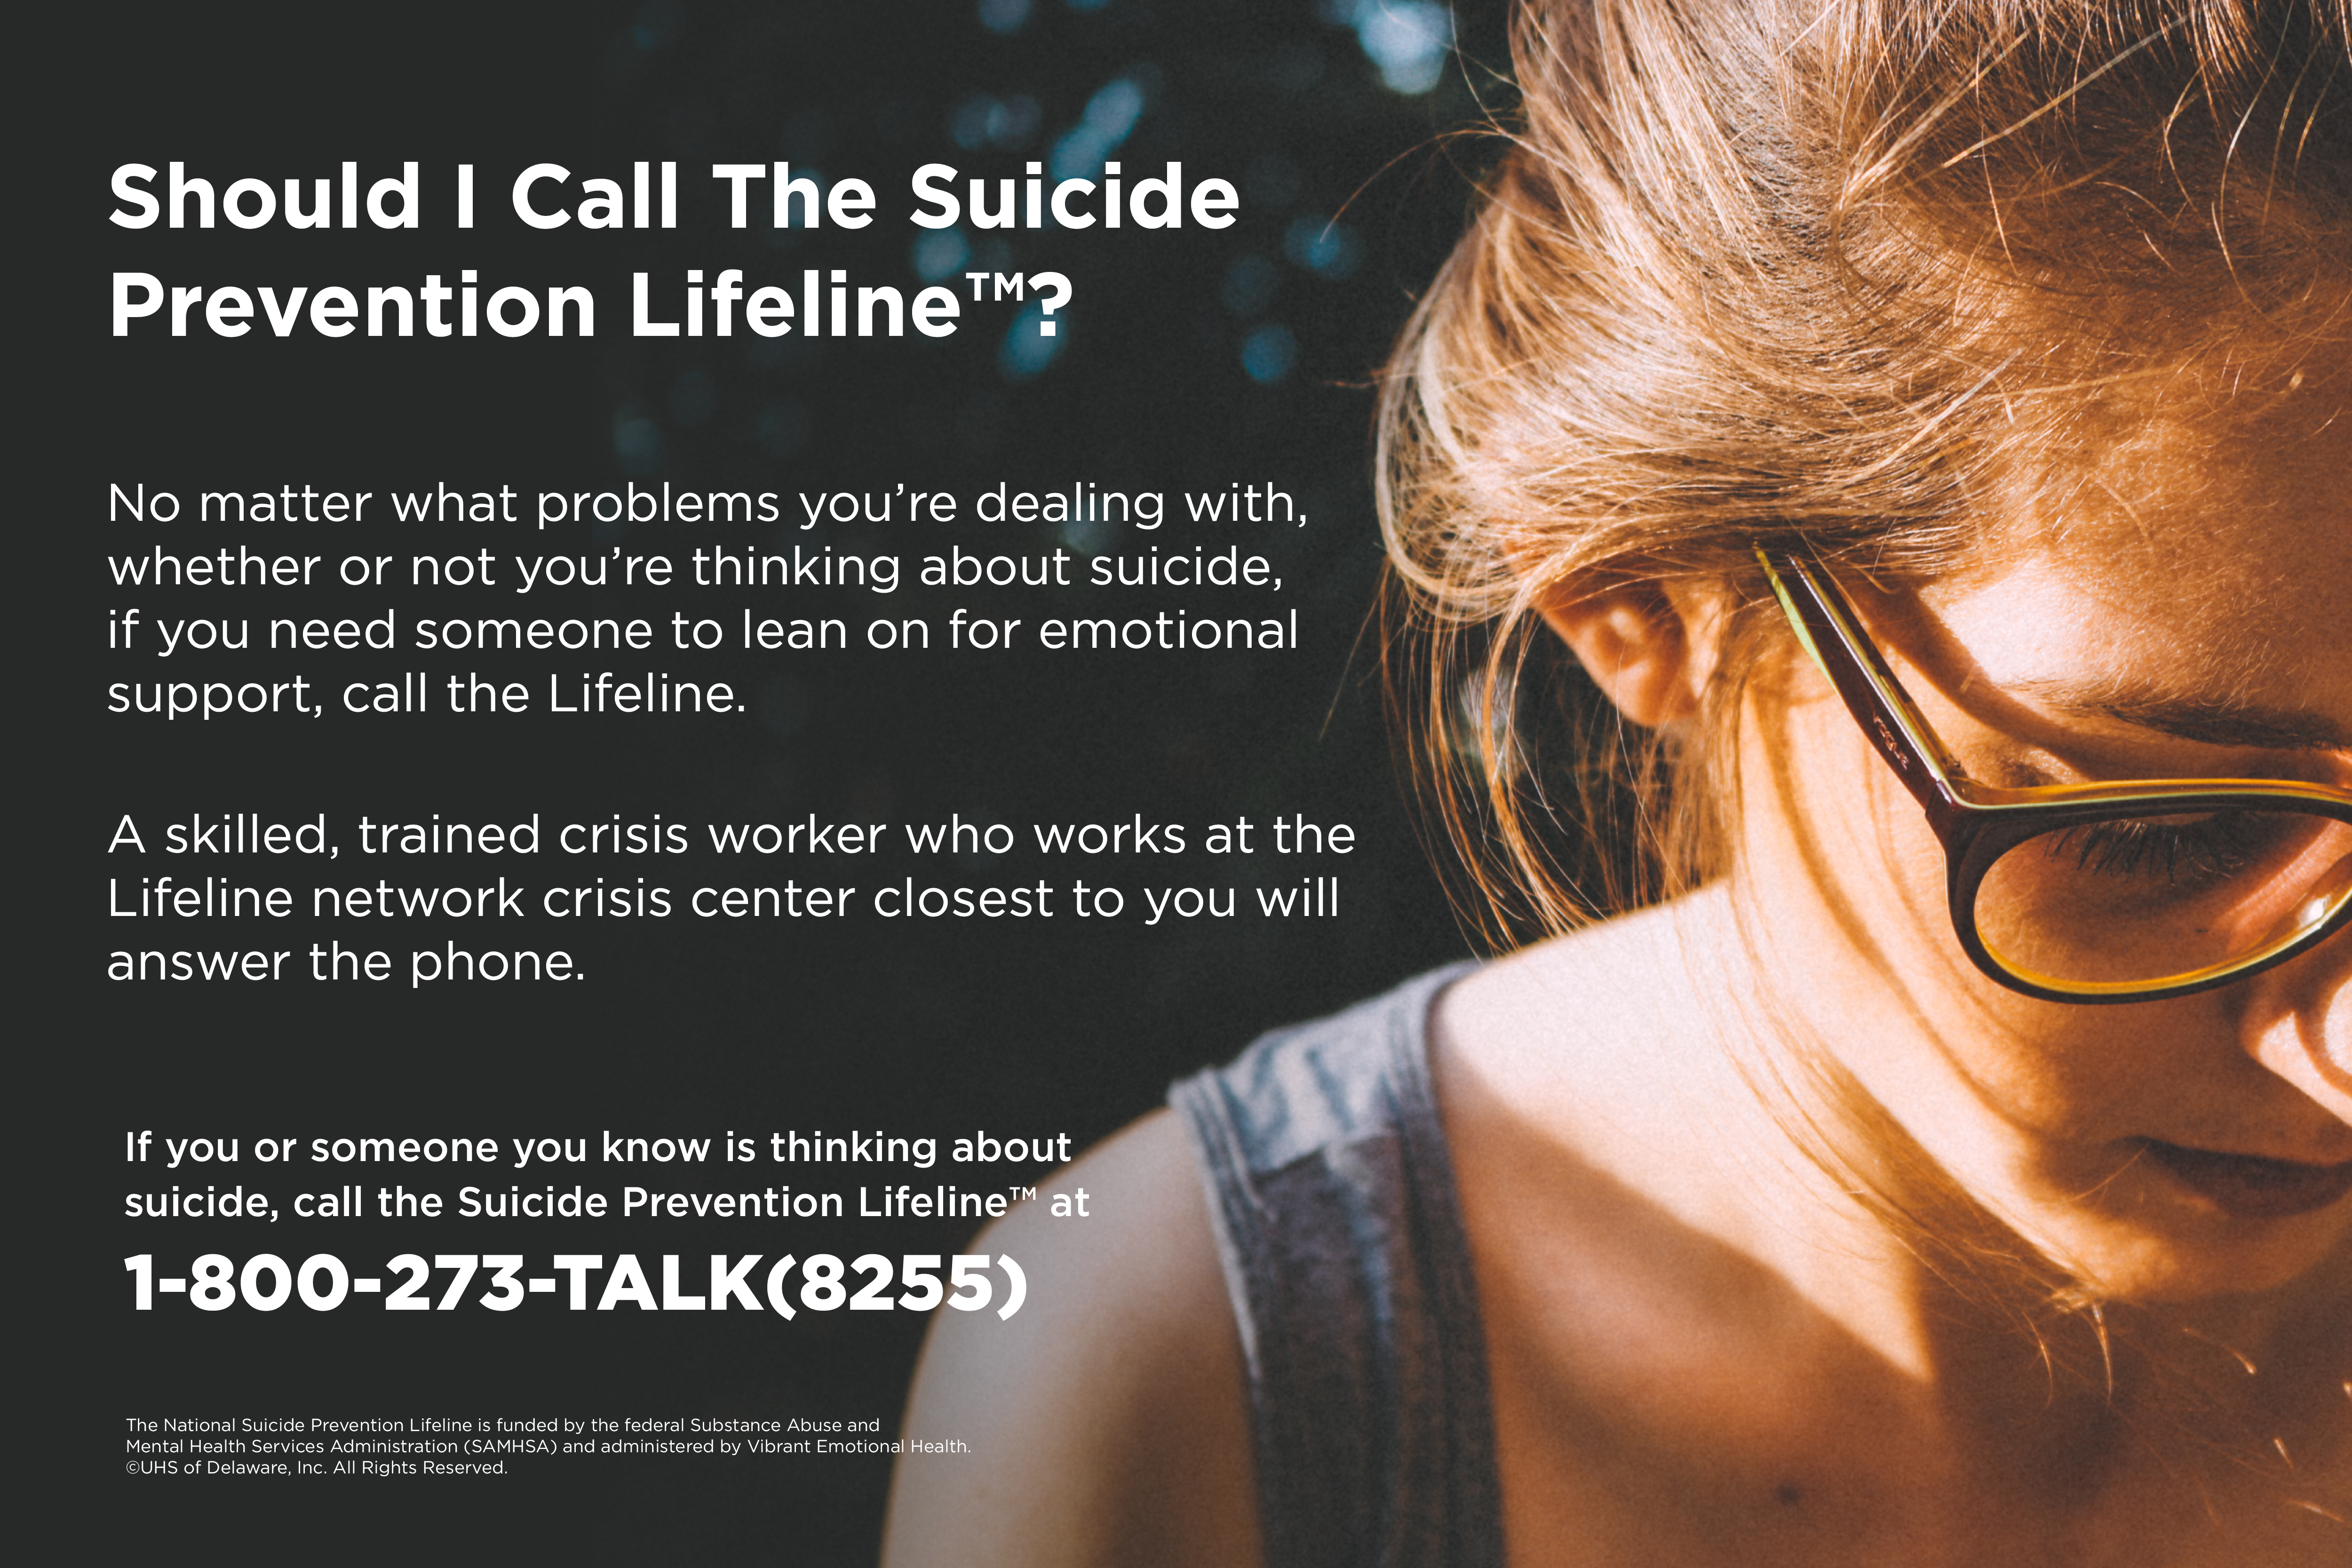 Should I Call The Suicide Help Prevention Lifeline?